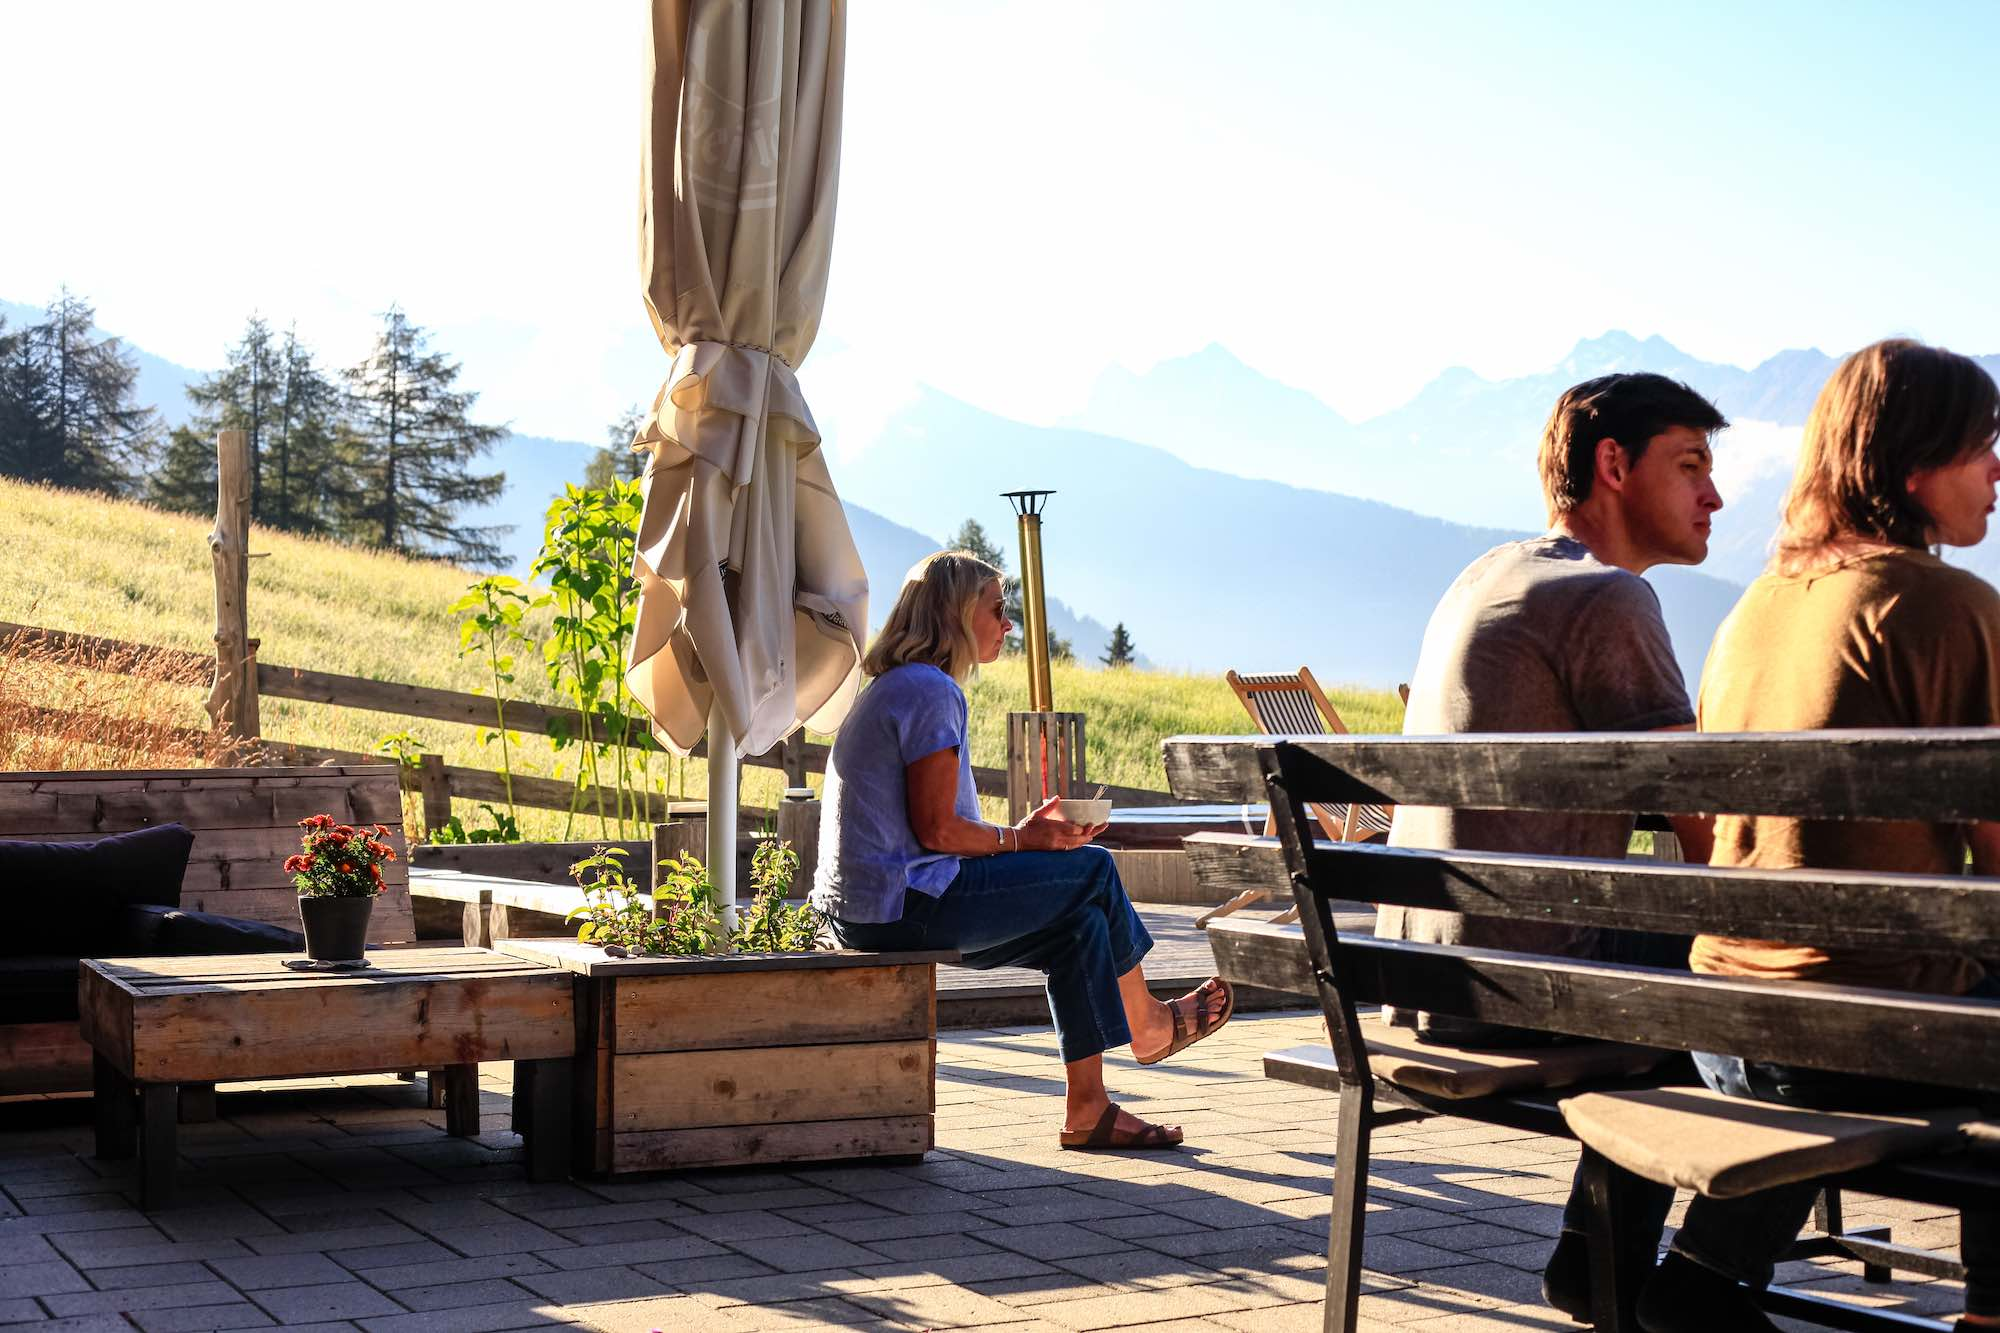 Summer views from the south facing terrace at MoaAlm, Austria